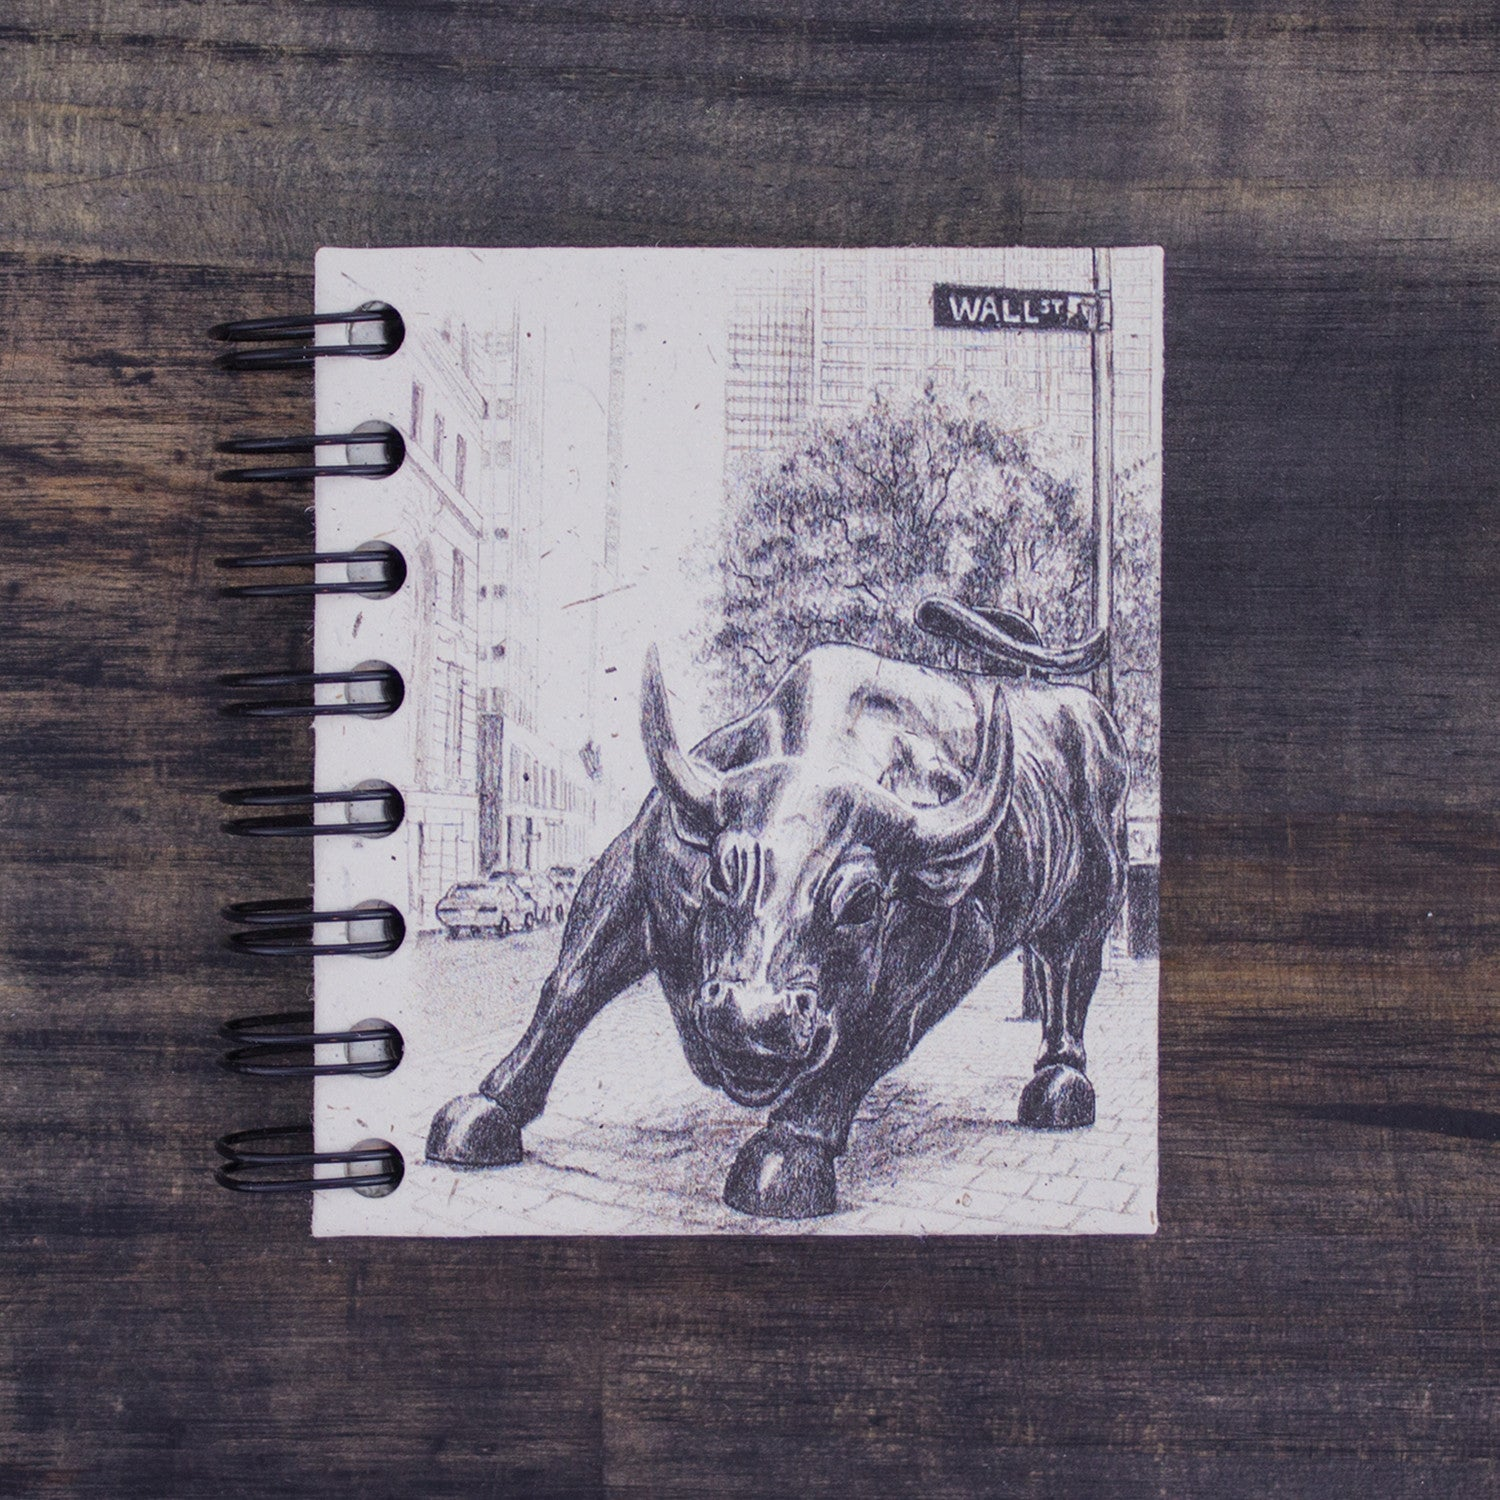 Small Notebook Wall Street Bull Sketch